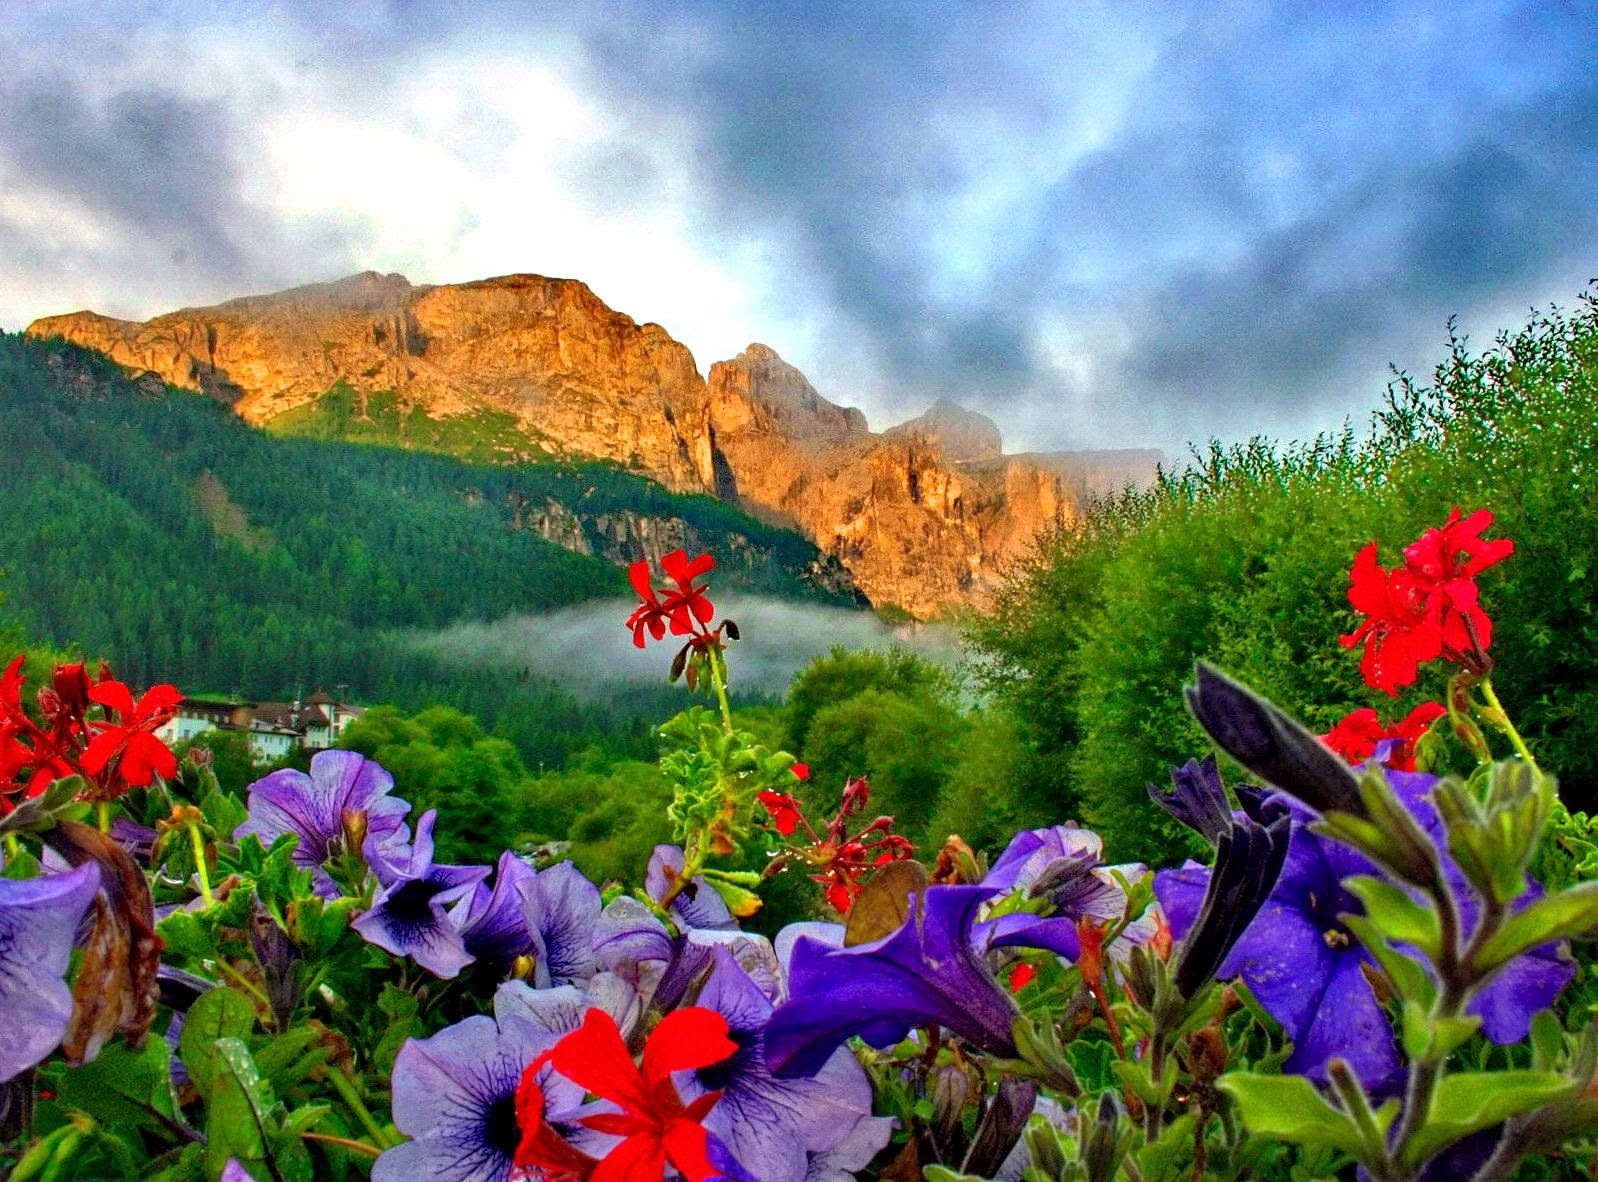 Beautiful Wallpaper With Quotes For Facebook Wallpaper Mountain Flower Extreme Beauty Of Nature